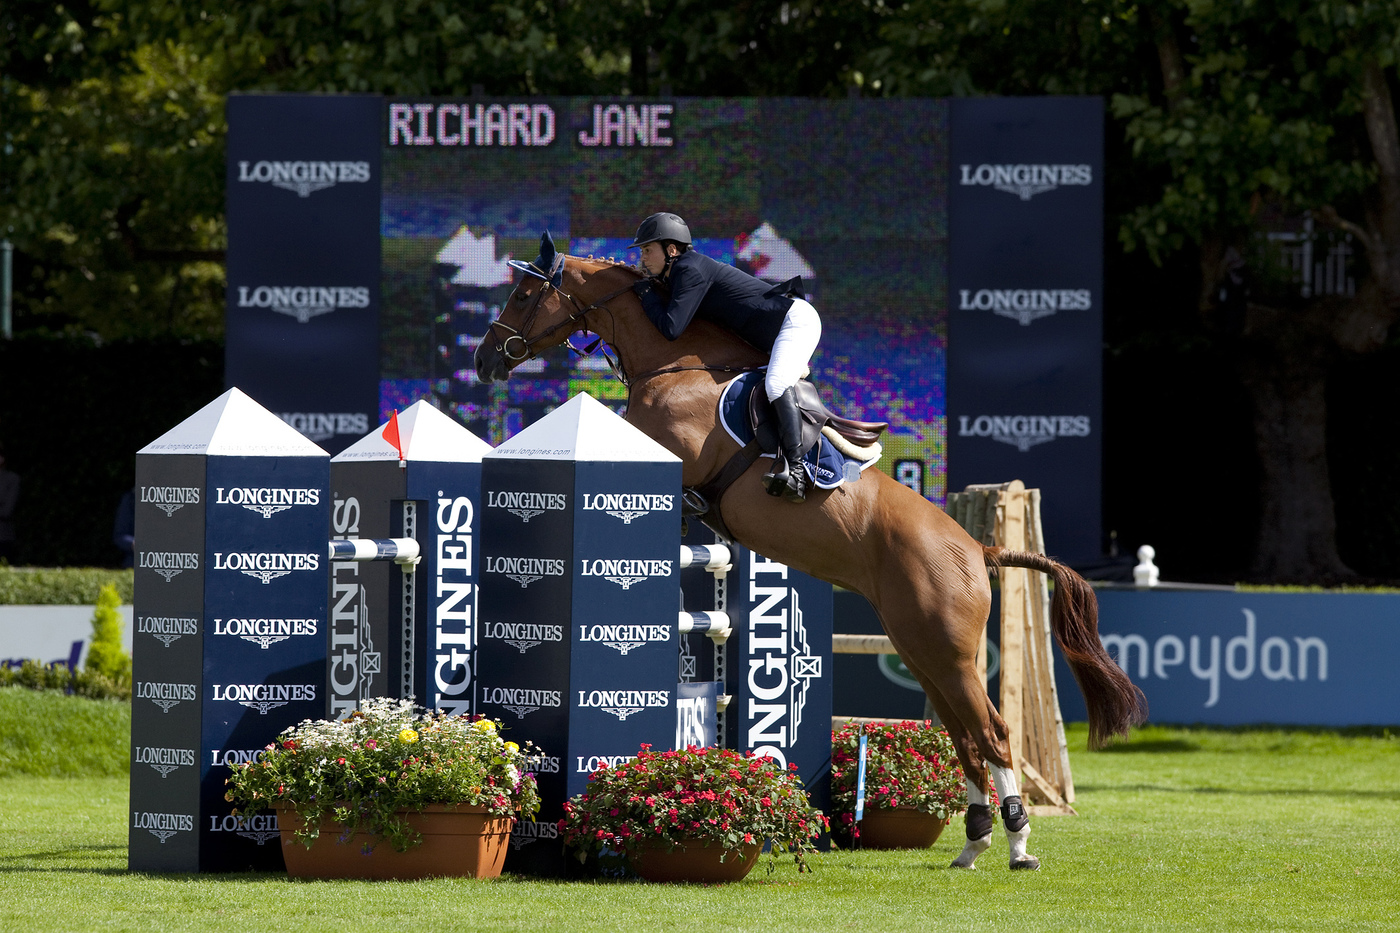 Longines Show Jumping Event: The winners of the 2010 Longines Press Award for Elegance 7